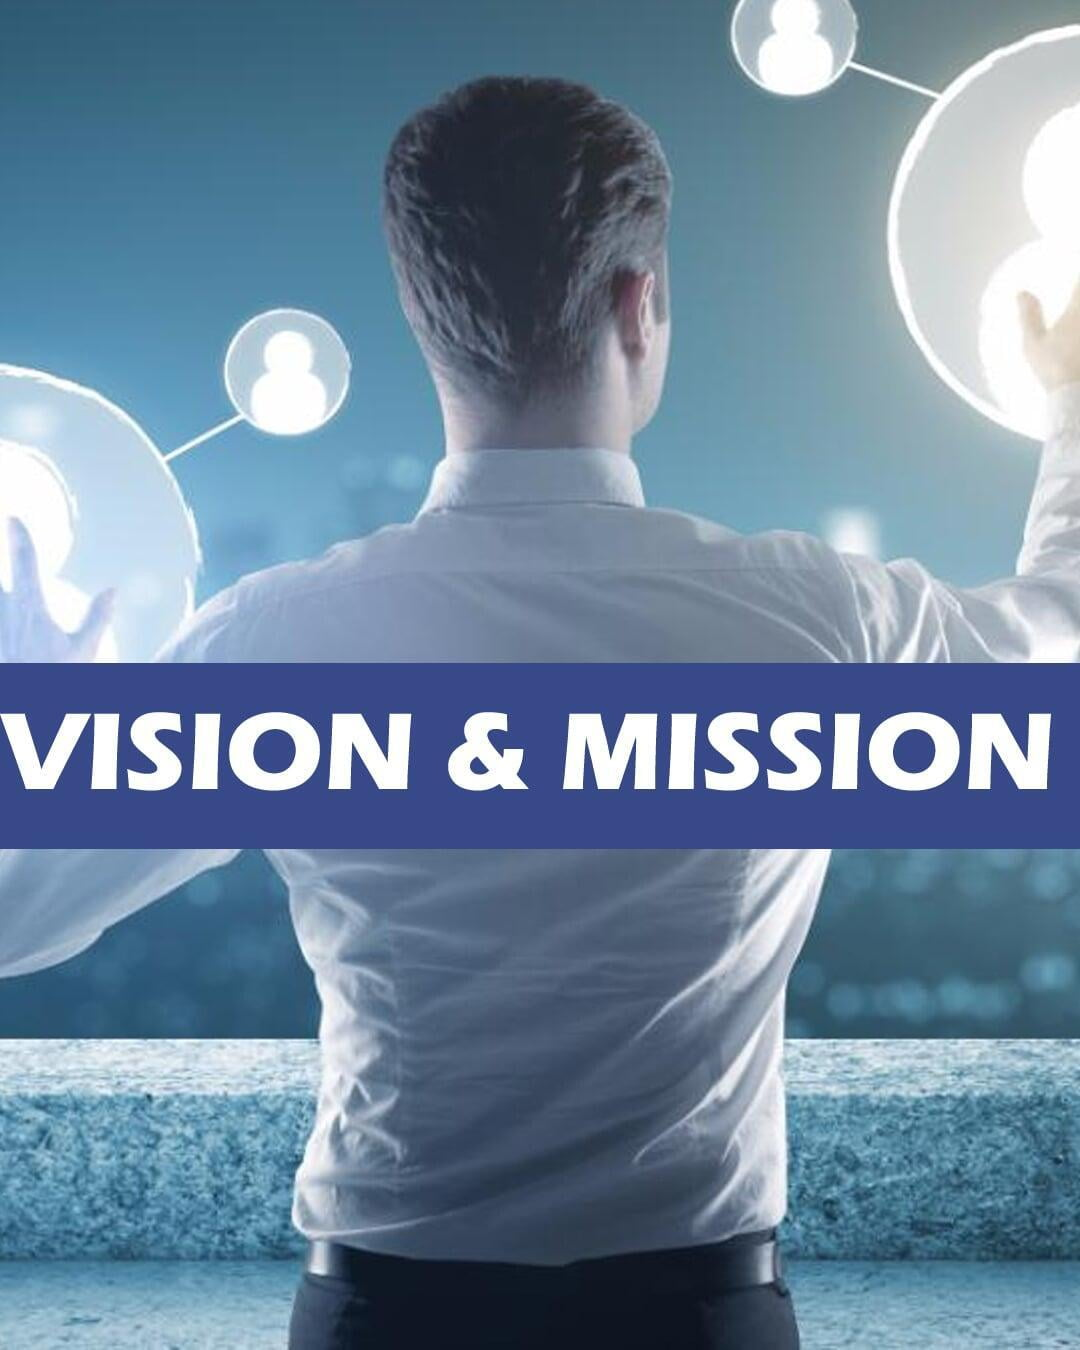 Vision avd Mission of Management Course at ITS